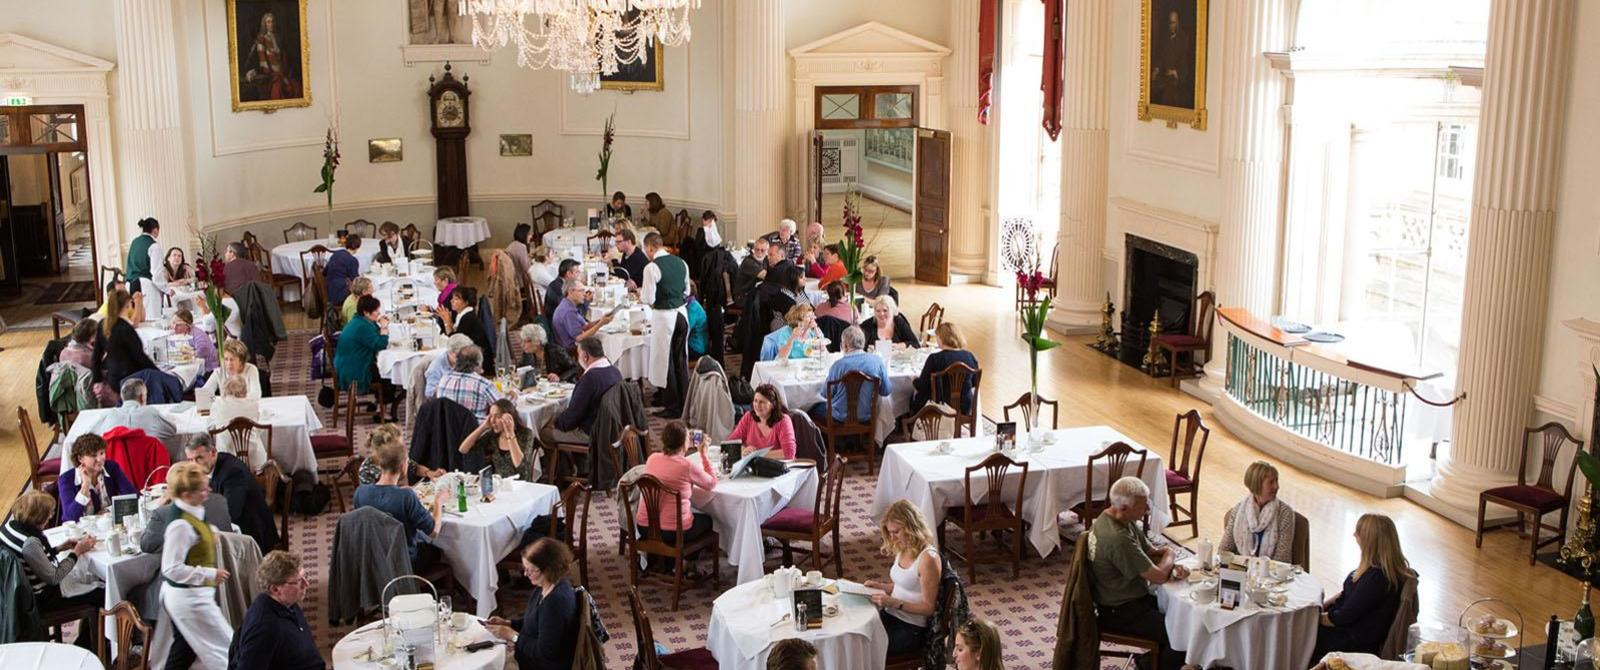 Image: Pump Room restaurant